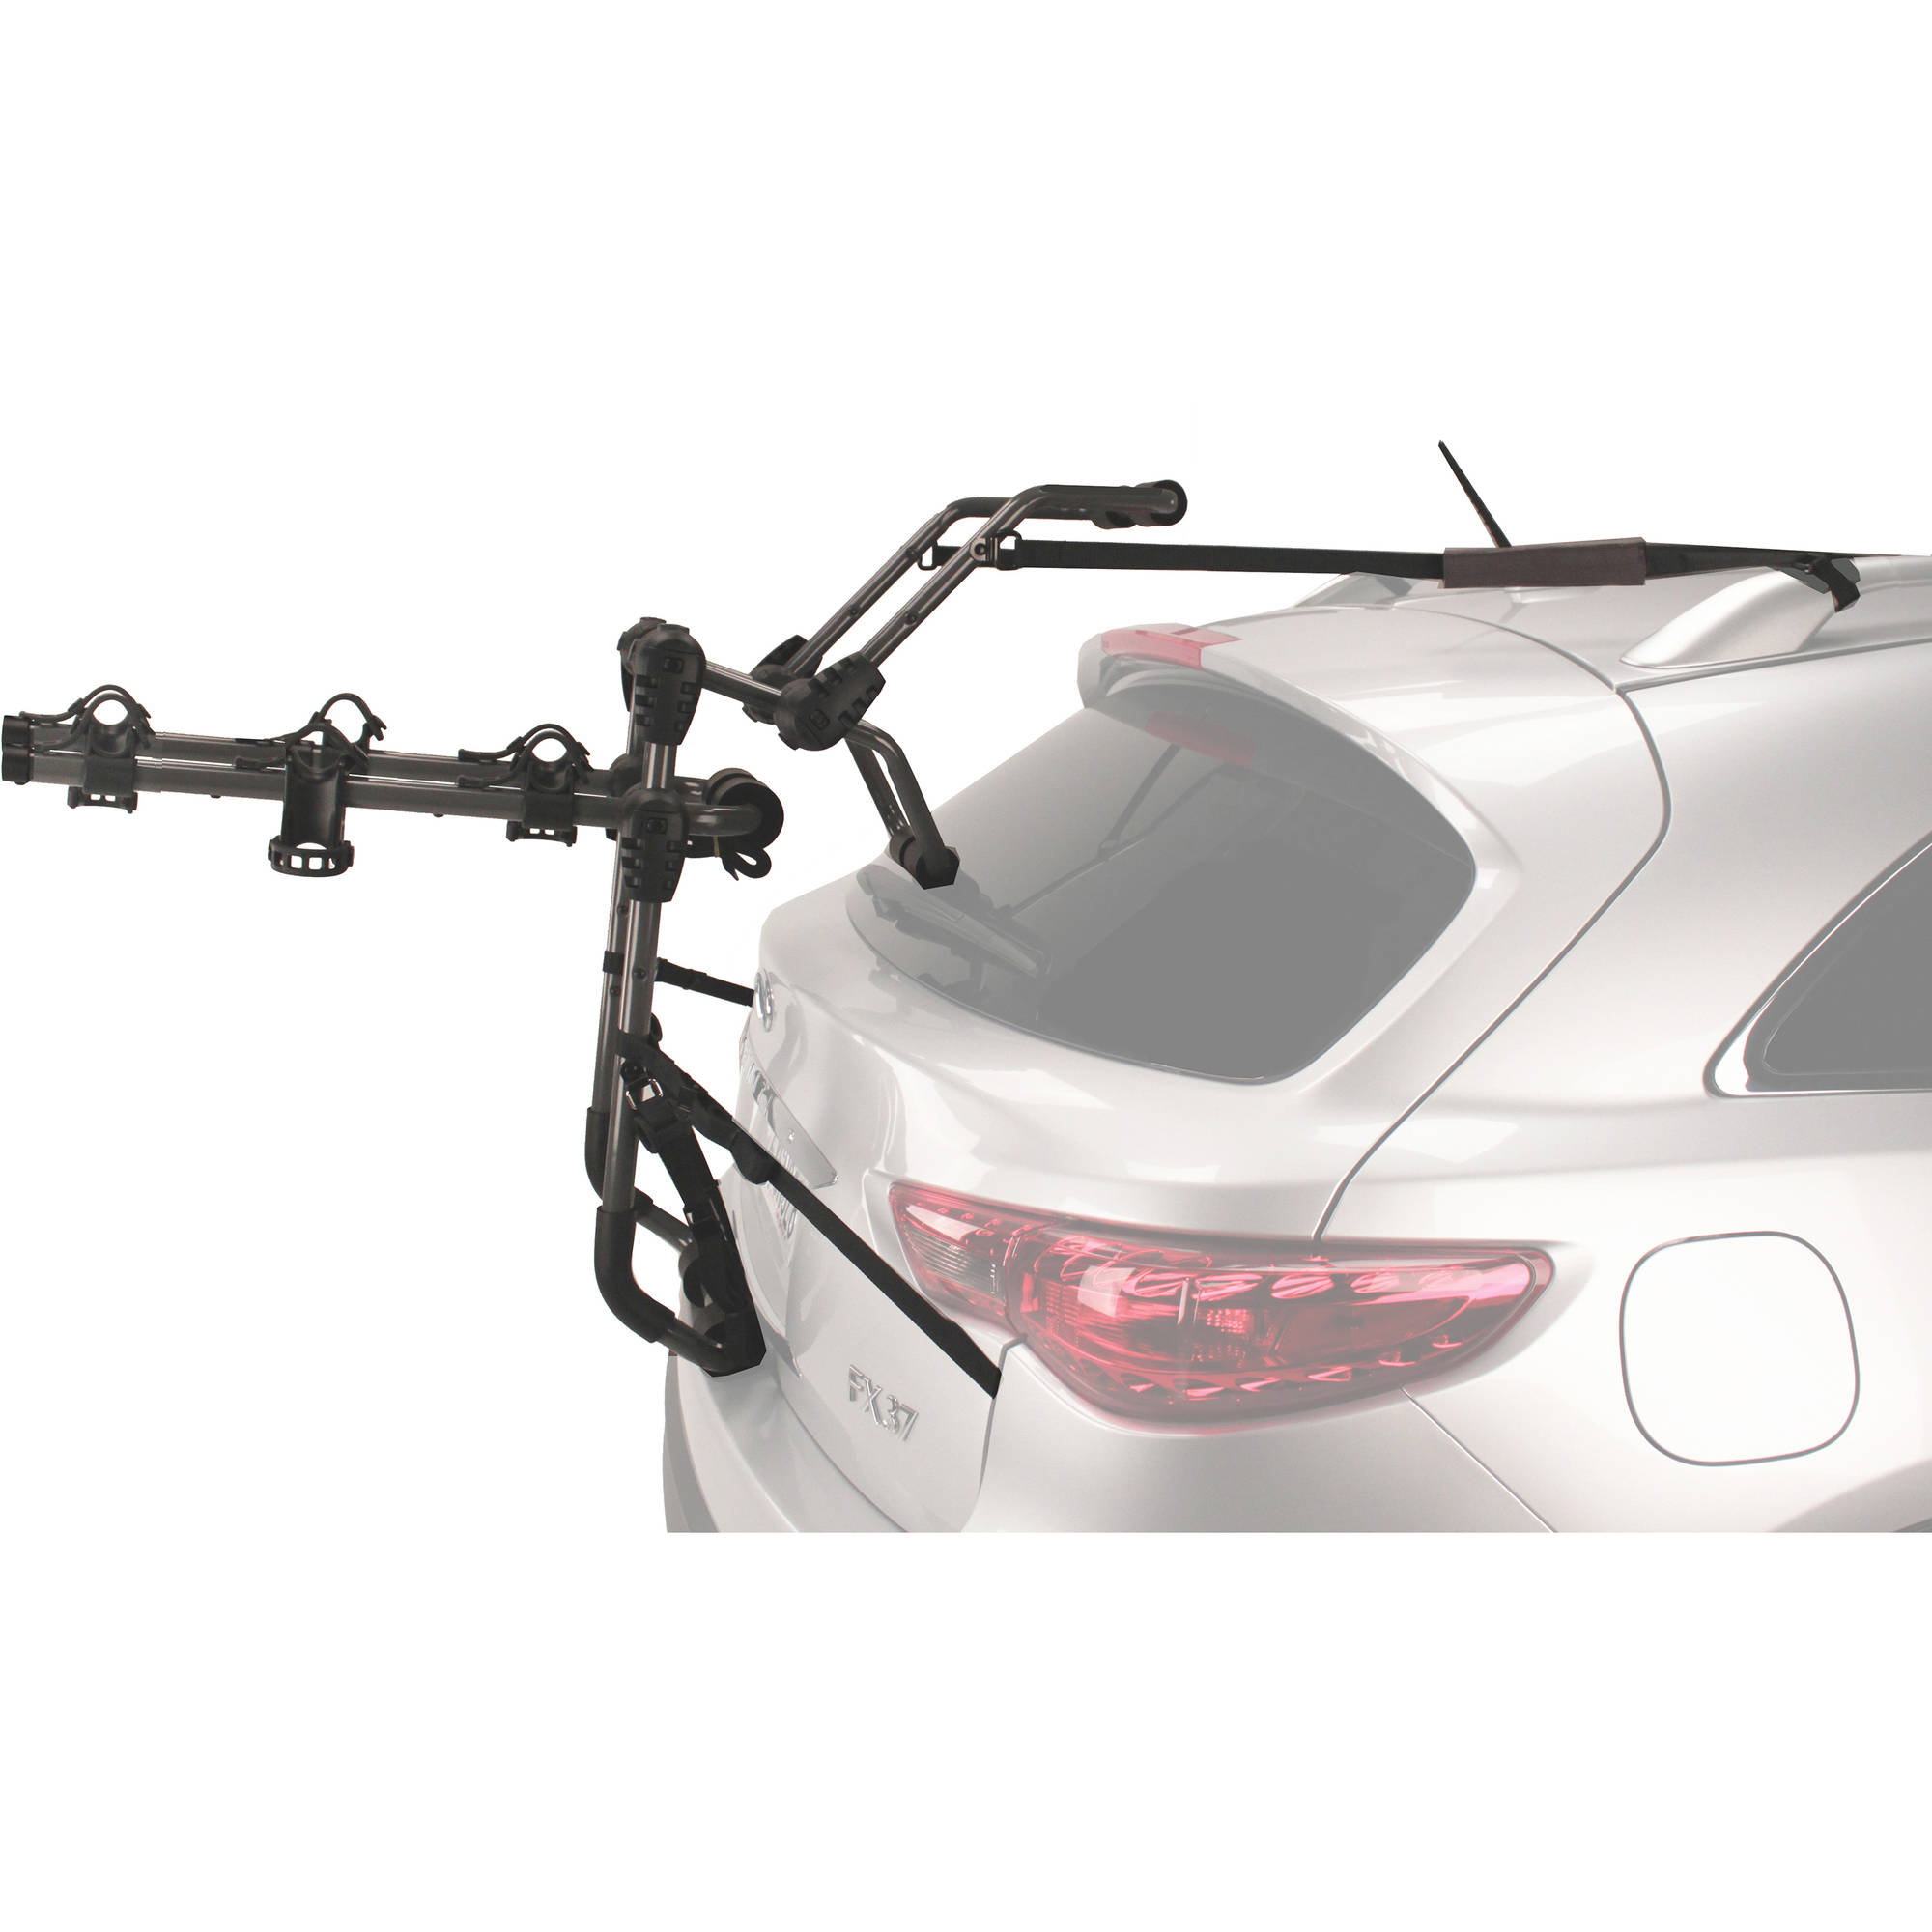 for swing rack truck suv mount deluxe hitch car product bike away bicycle carrier new s